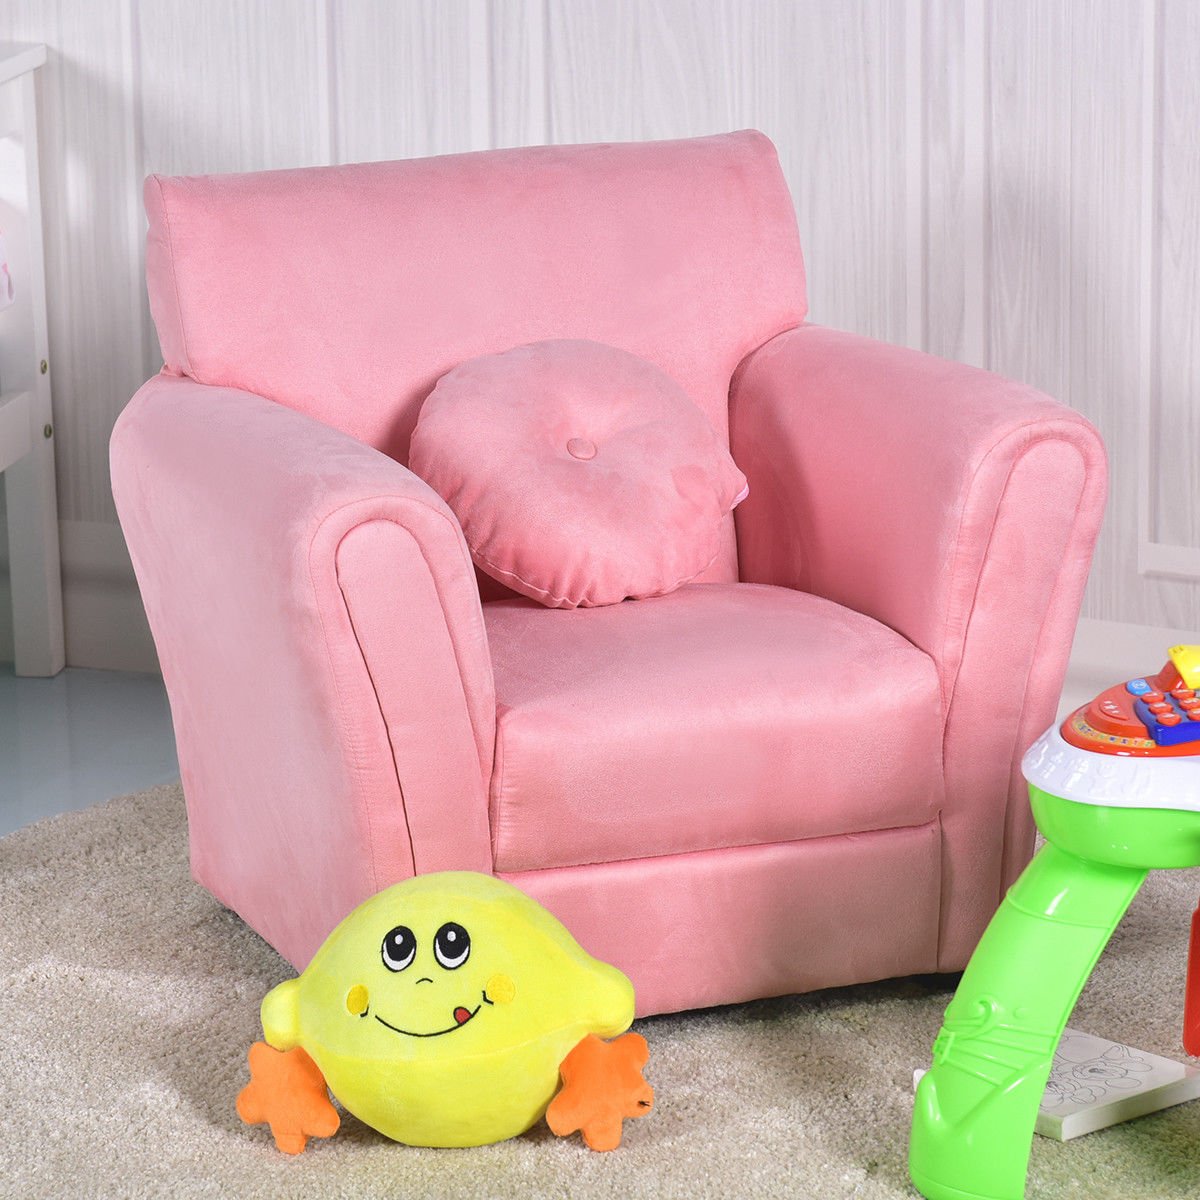 children living room furniture l shaped ideas india gymax kids sofa armrest chair couch birthday gift w pillow pink